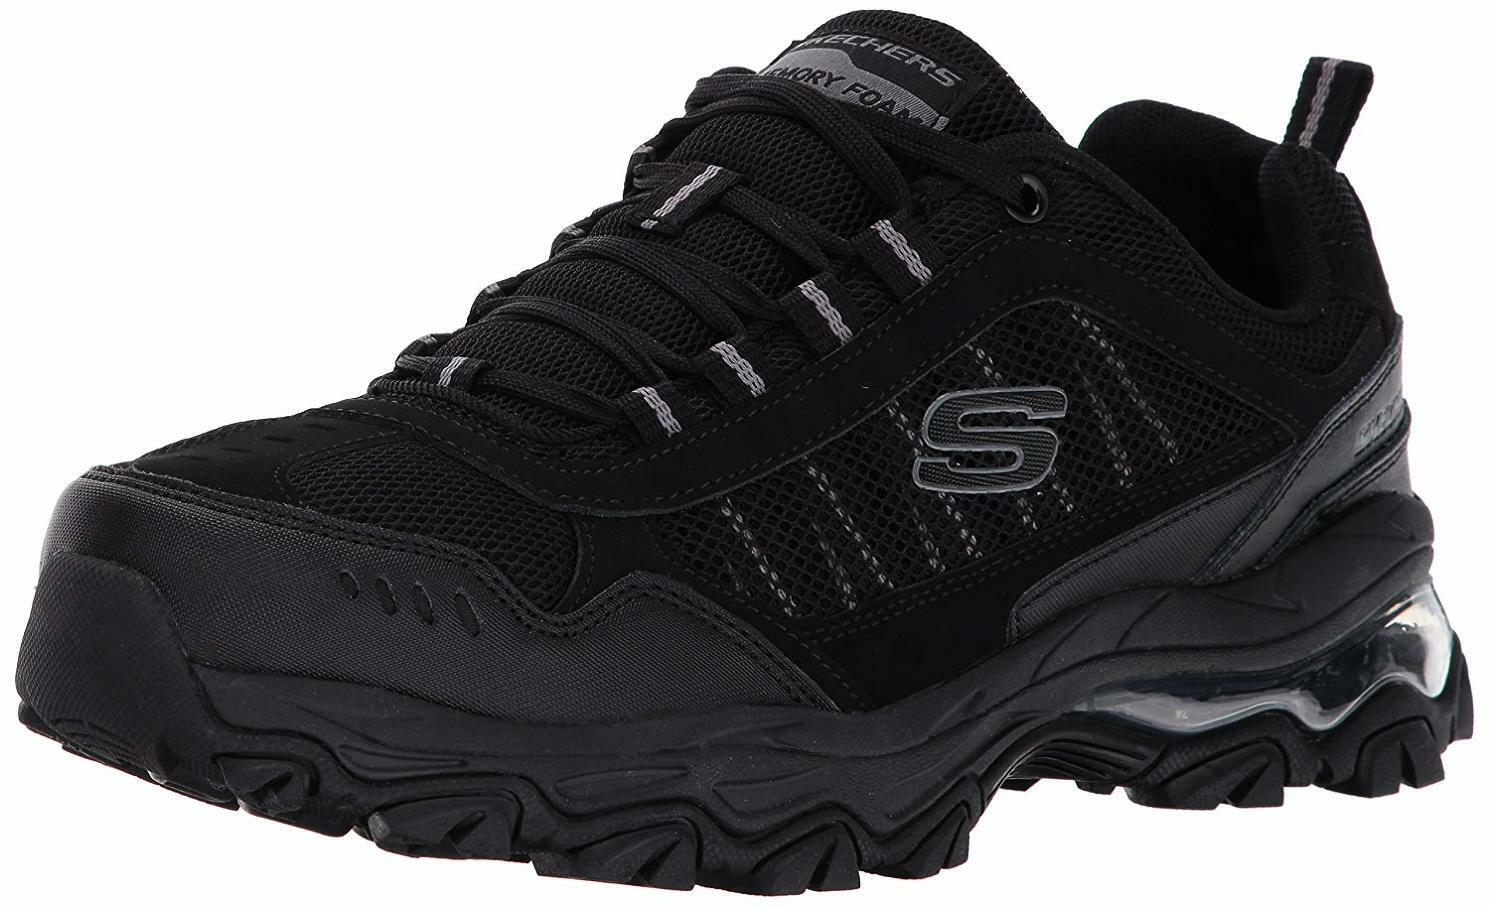 Homme Skechers M. fit Air Oxford Athletic Training chaussures-Choisir Taille couleur